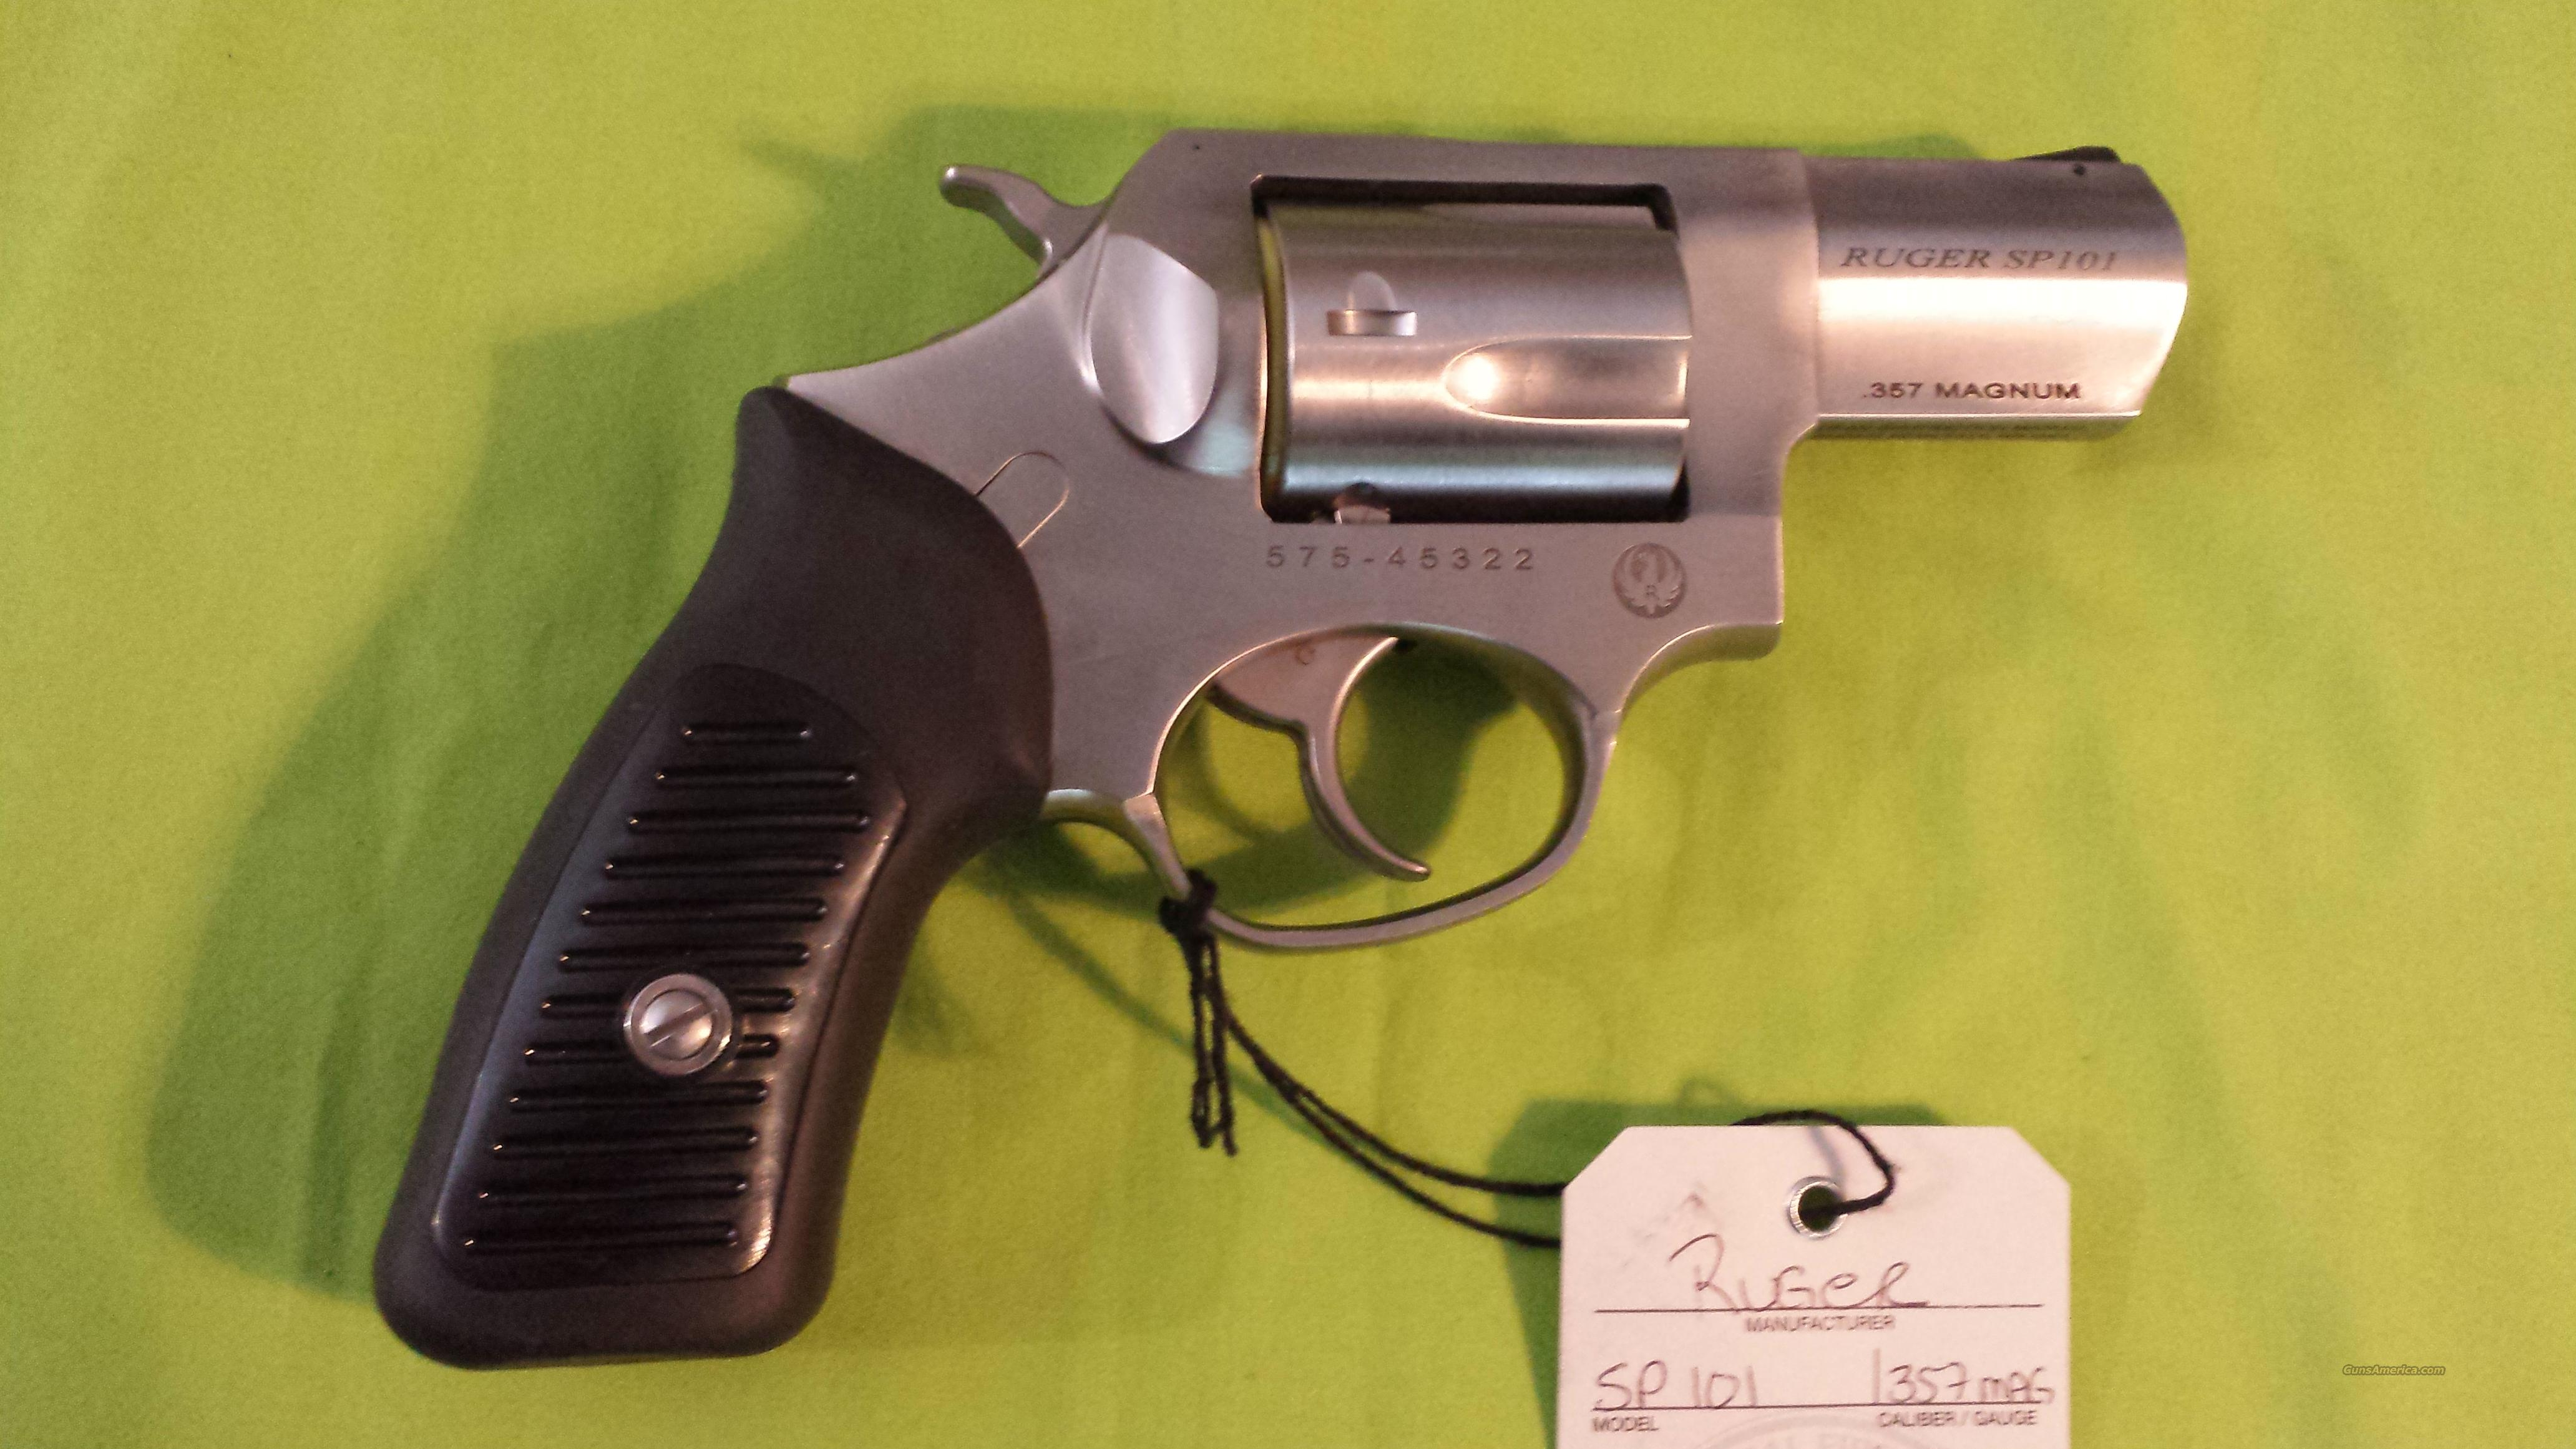 RUGER SP101 SP 101 357 MAG REVOLVER 2.25 STAINLESS  Guns > Pistols > Ruger Double Action Revolver > SP101 Type